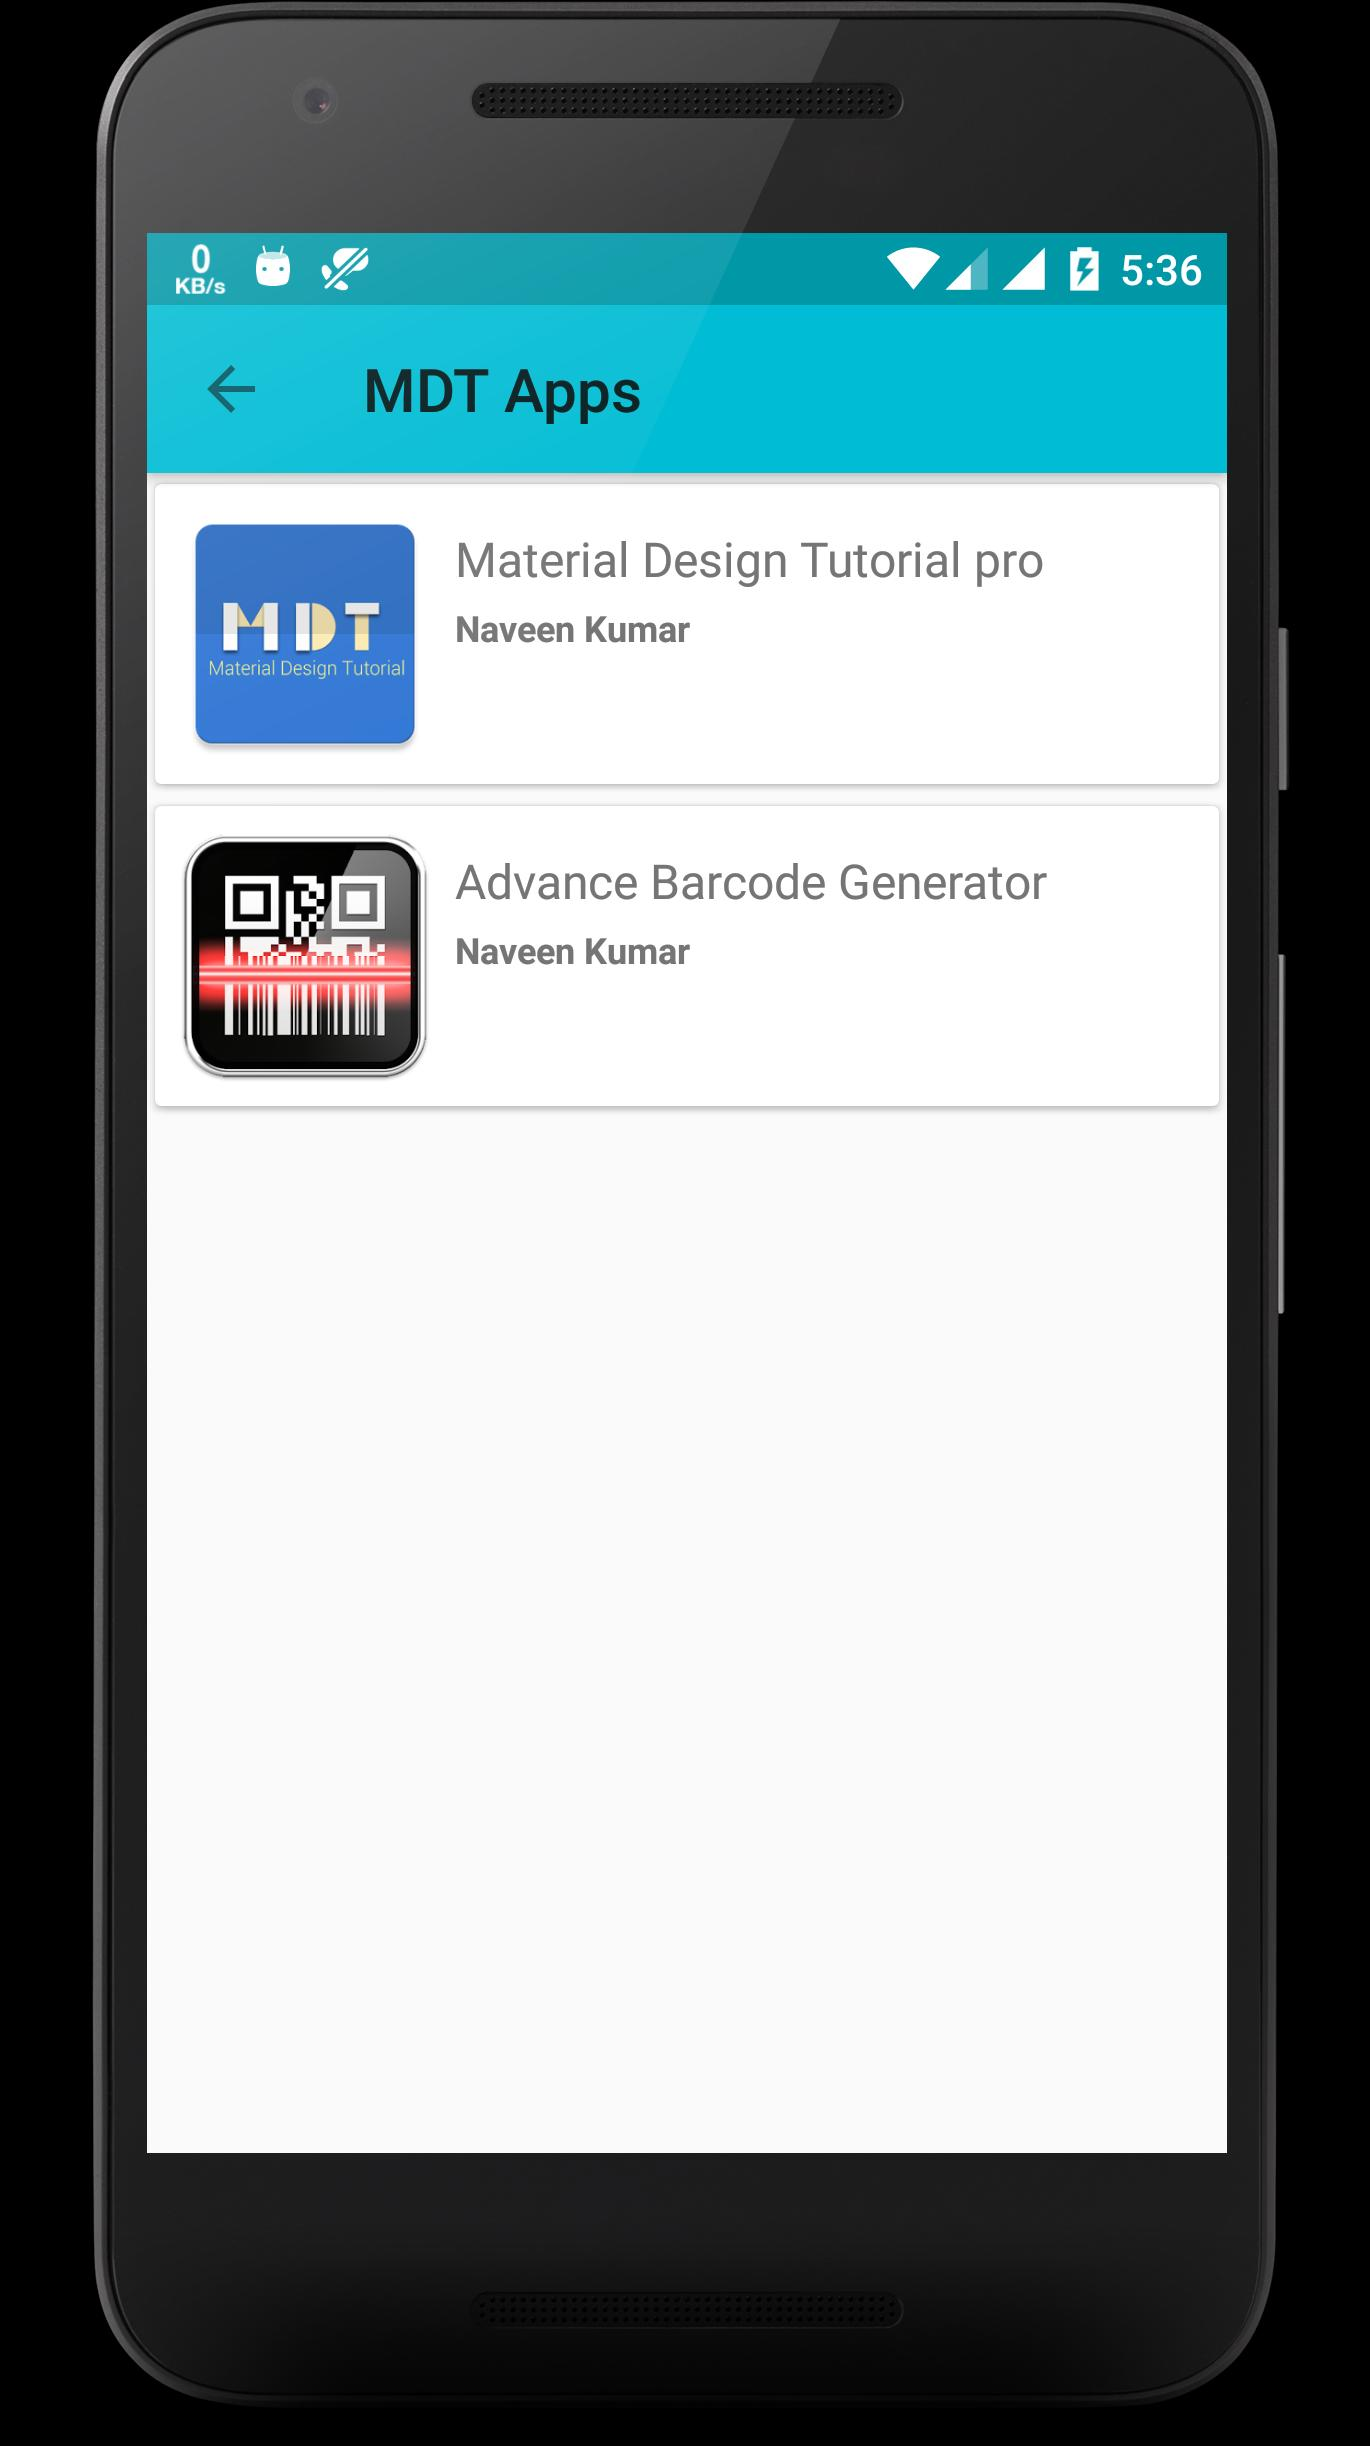 Material Design Tutorial for Android - APK Download